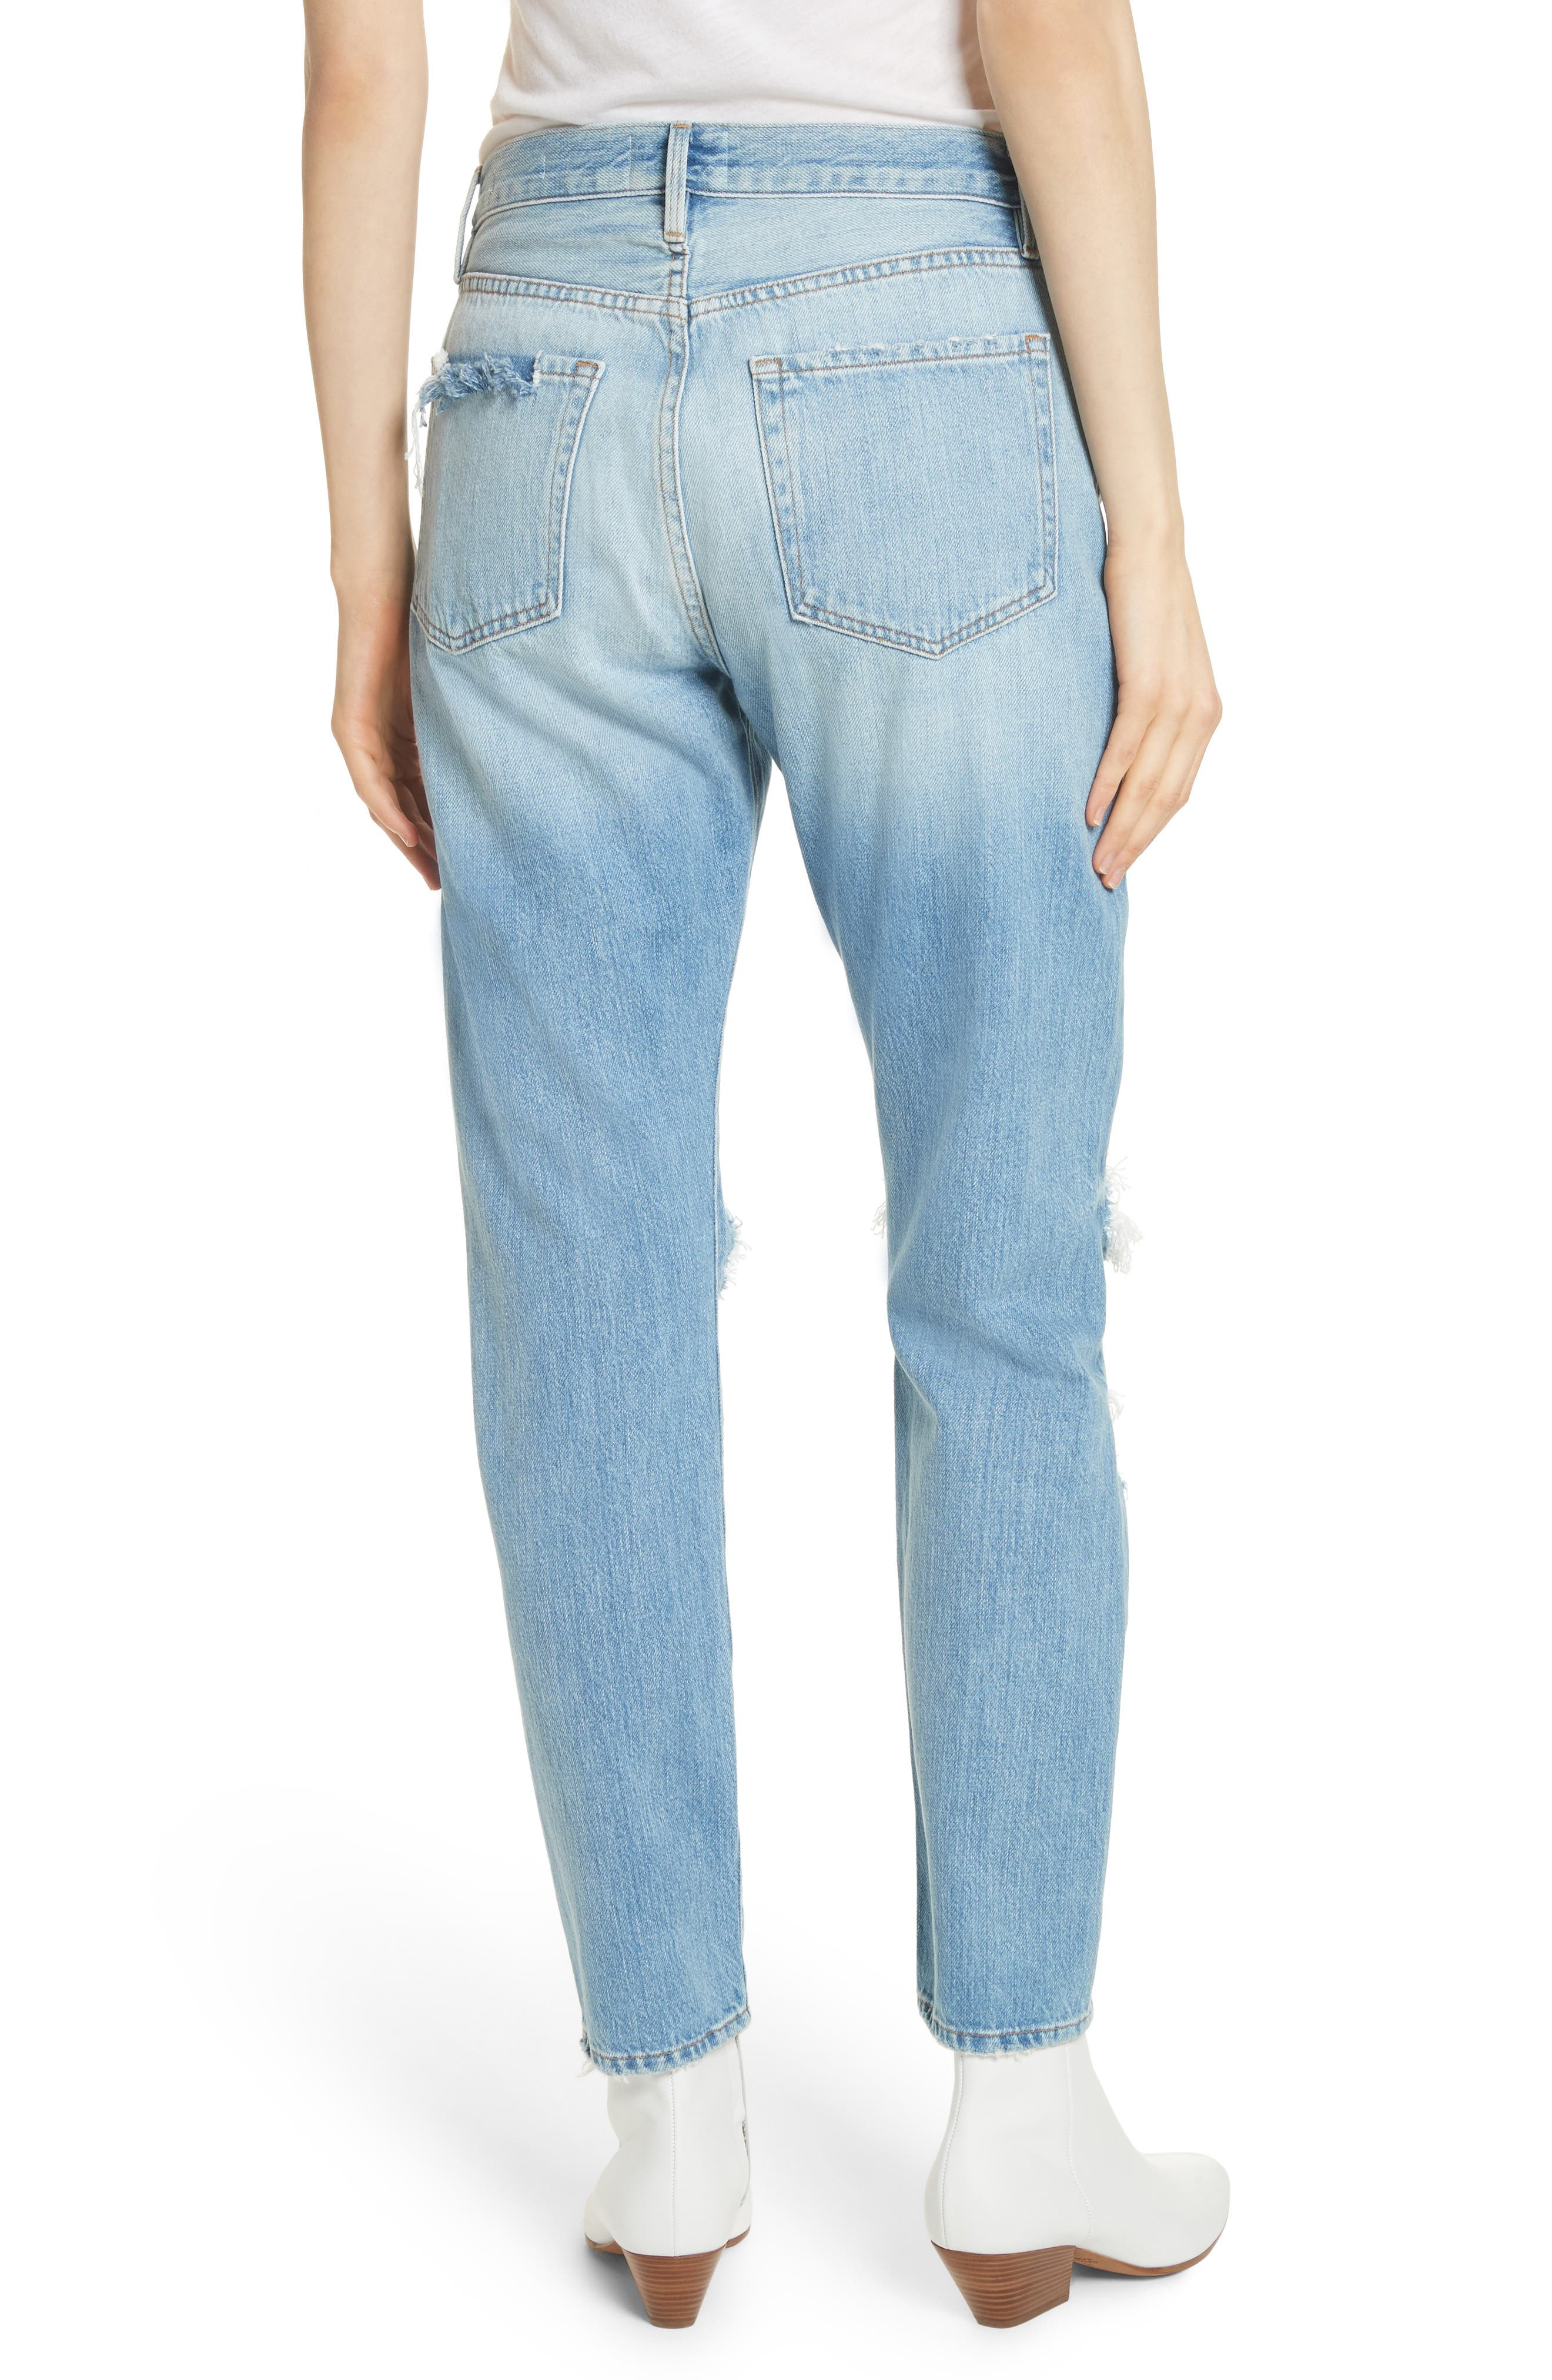 Le Original Ripped High Waist Skinny Jeans,                             Alternate thumbnail 2, color,                             POMDALE